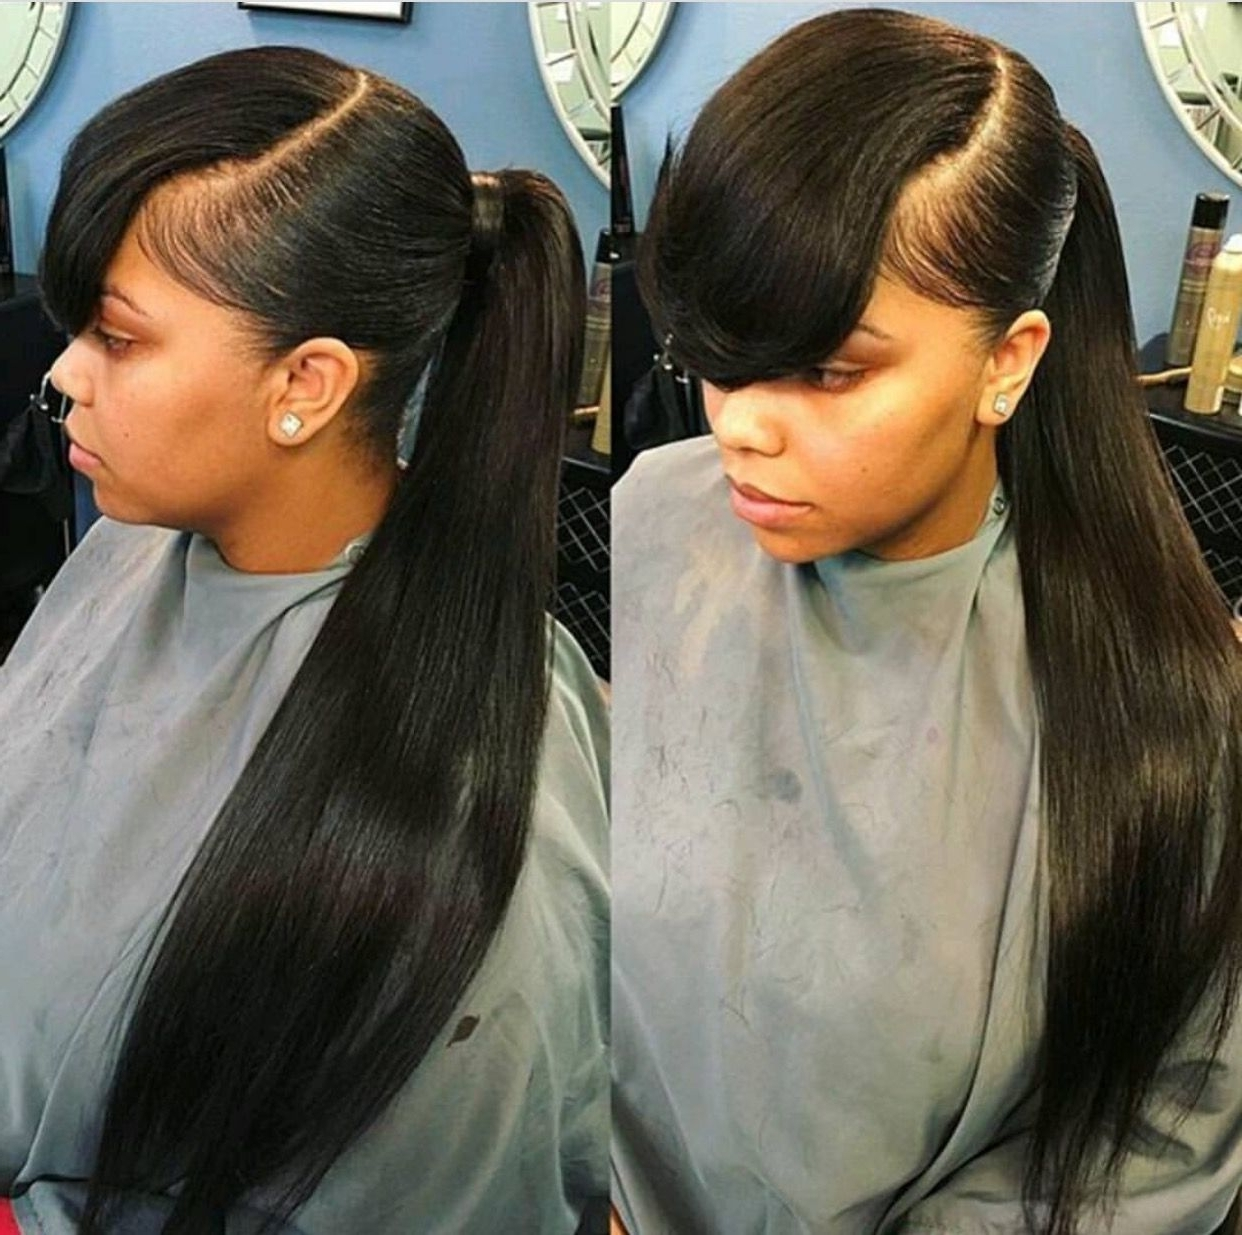 Natural Hair Growth With Regard To Current Low Black Ponytail Hairstyles With Bangs (View 4 of 20)